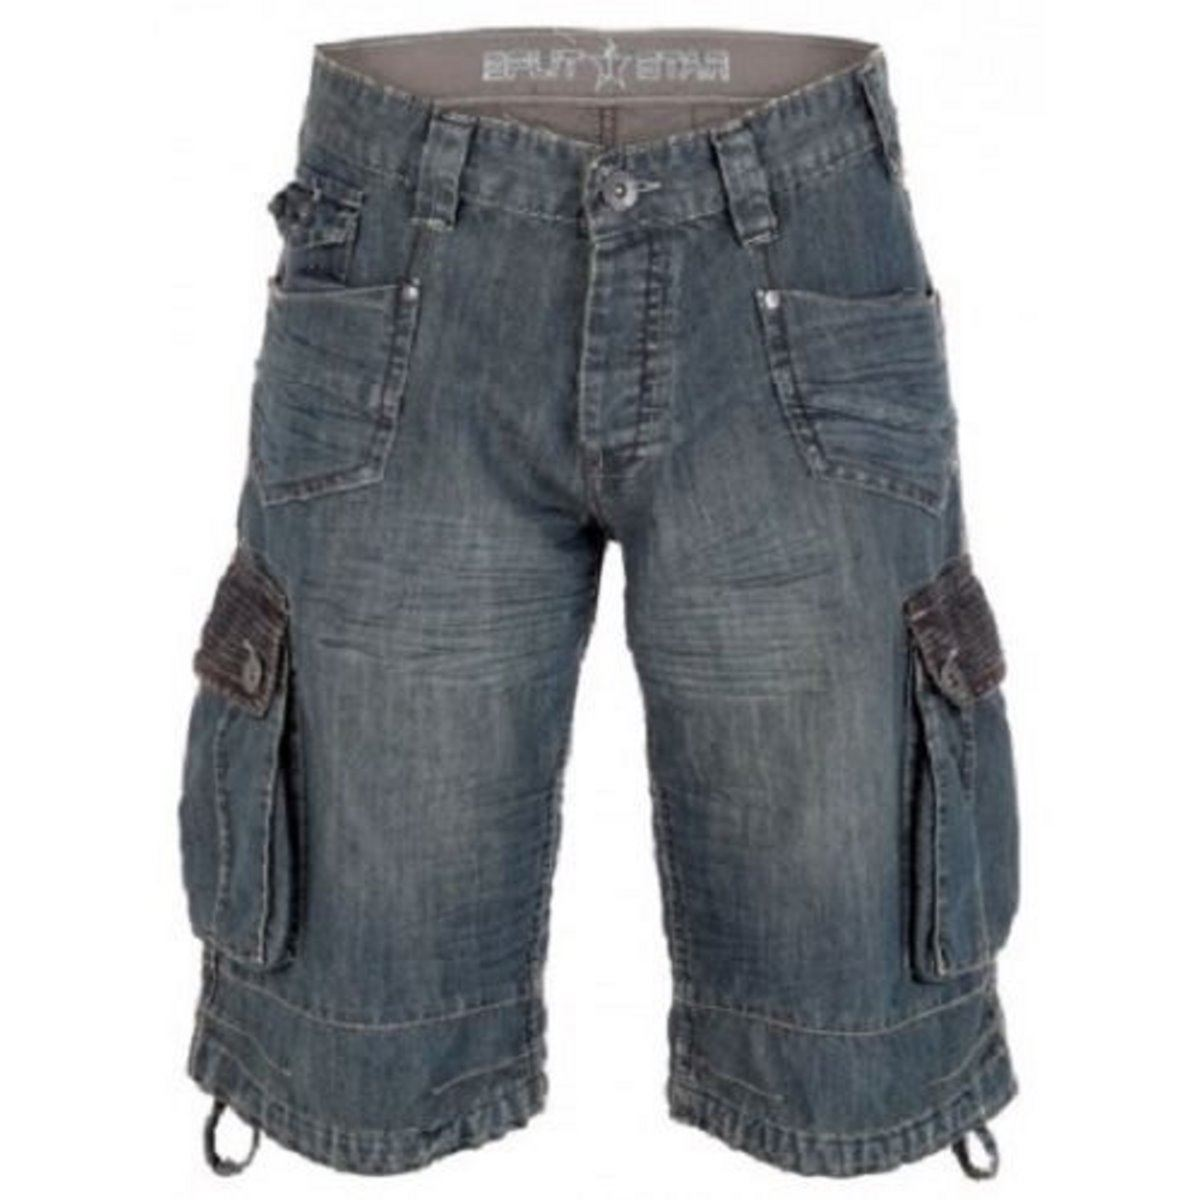 mens denim shorts cargo combat jeans blue jean size 30 32 34 36 38 40 waist surf ebay. Black Bedroom Furniture Sets. Home Design Ideas